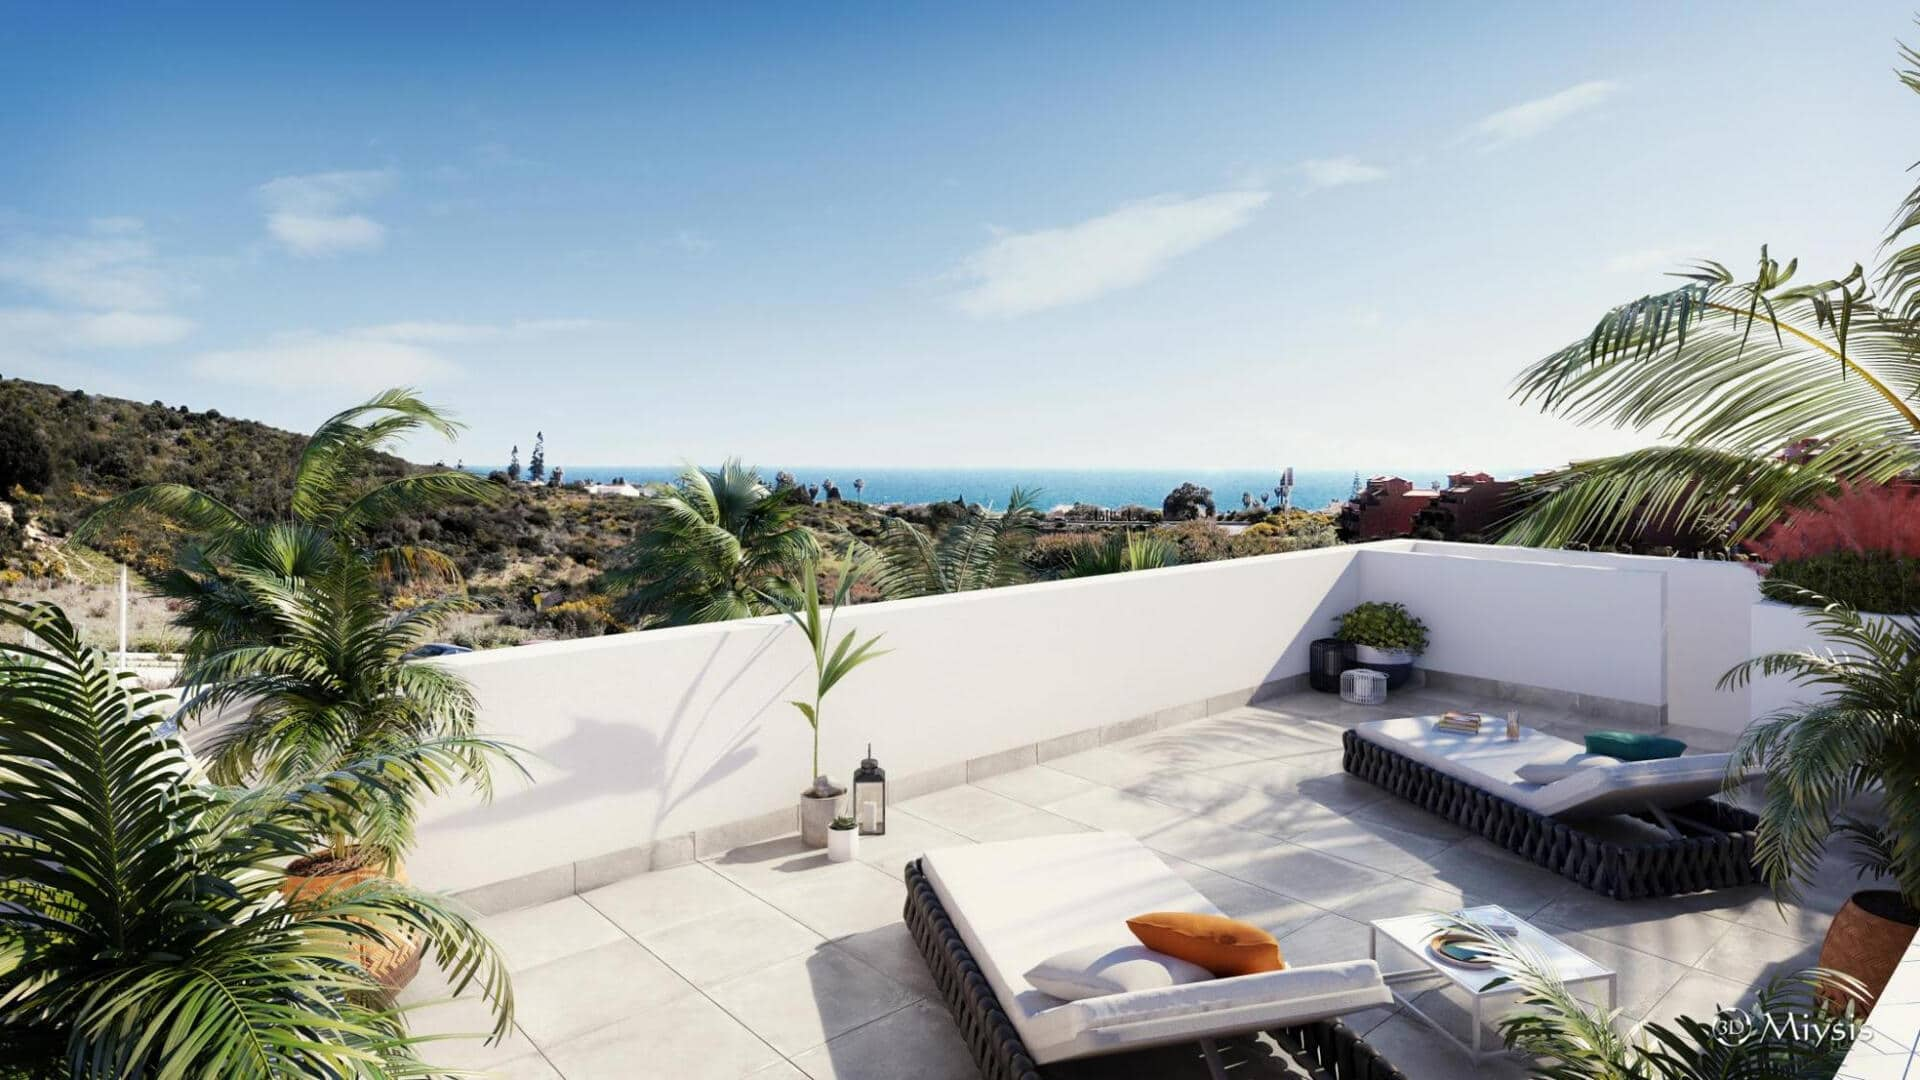 Serenity Collection Estepona 2 bedroom penthouse apartment with large terrace and amazing views